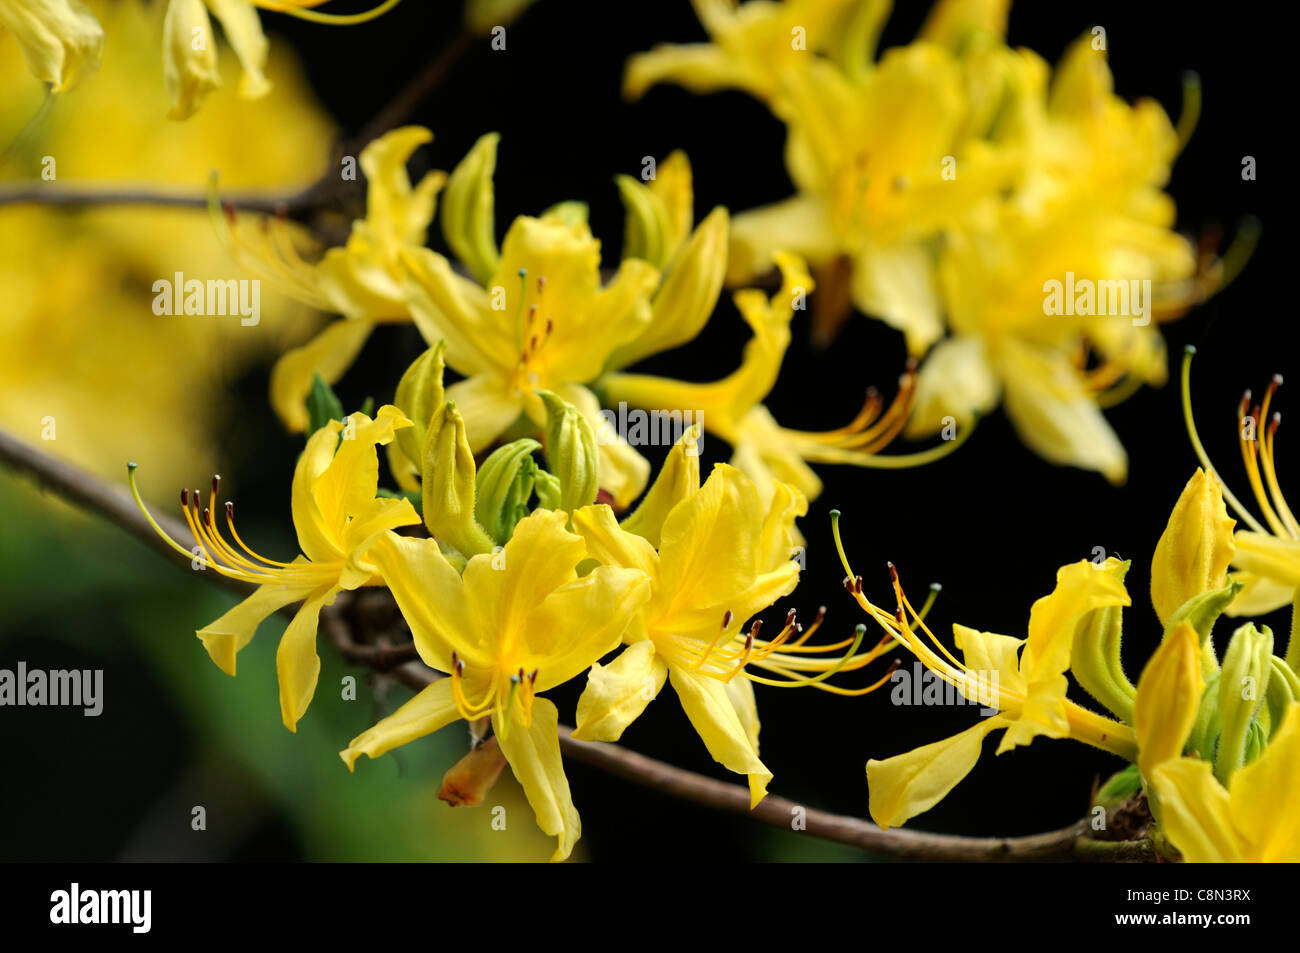 rhododendron luteum yellow flowers blooms blossoms closeup selective focus  shrubs plant portraits - Stock Image